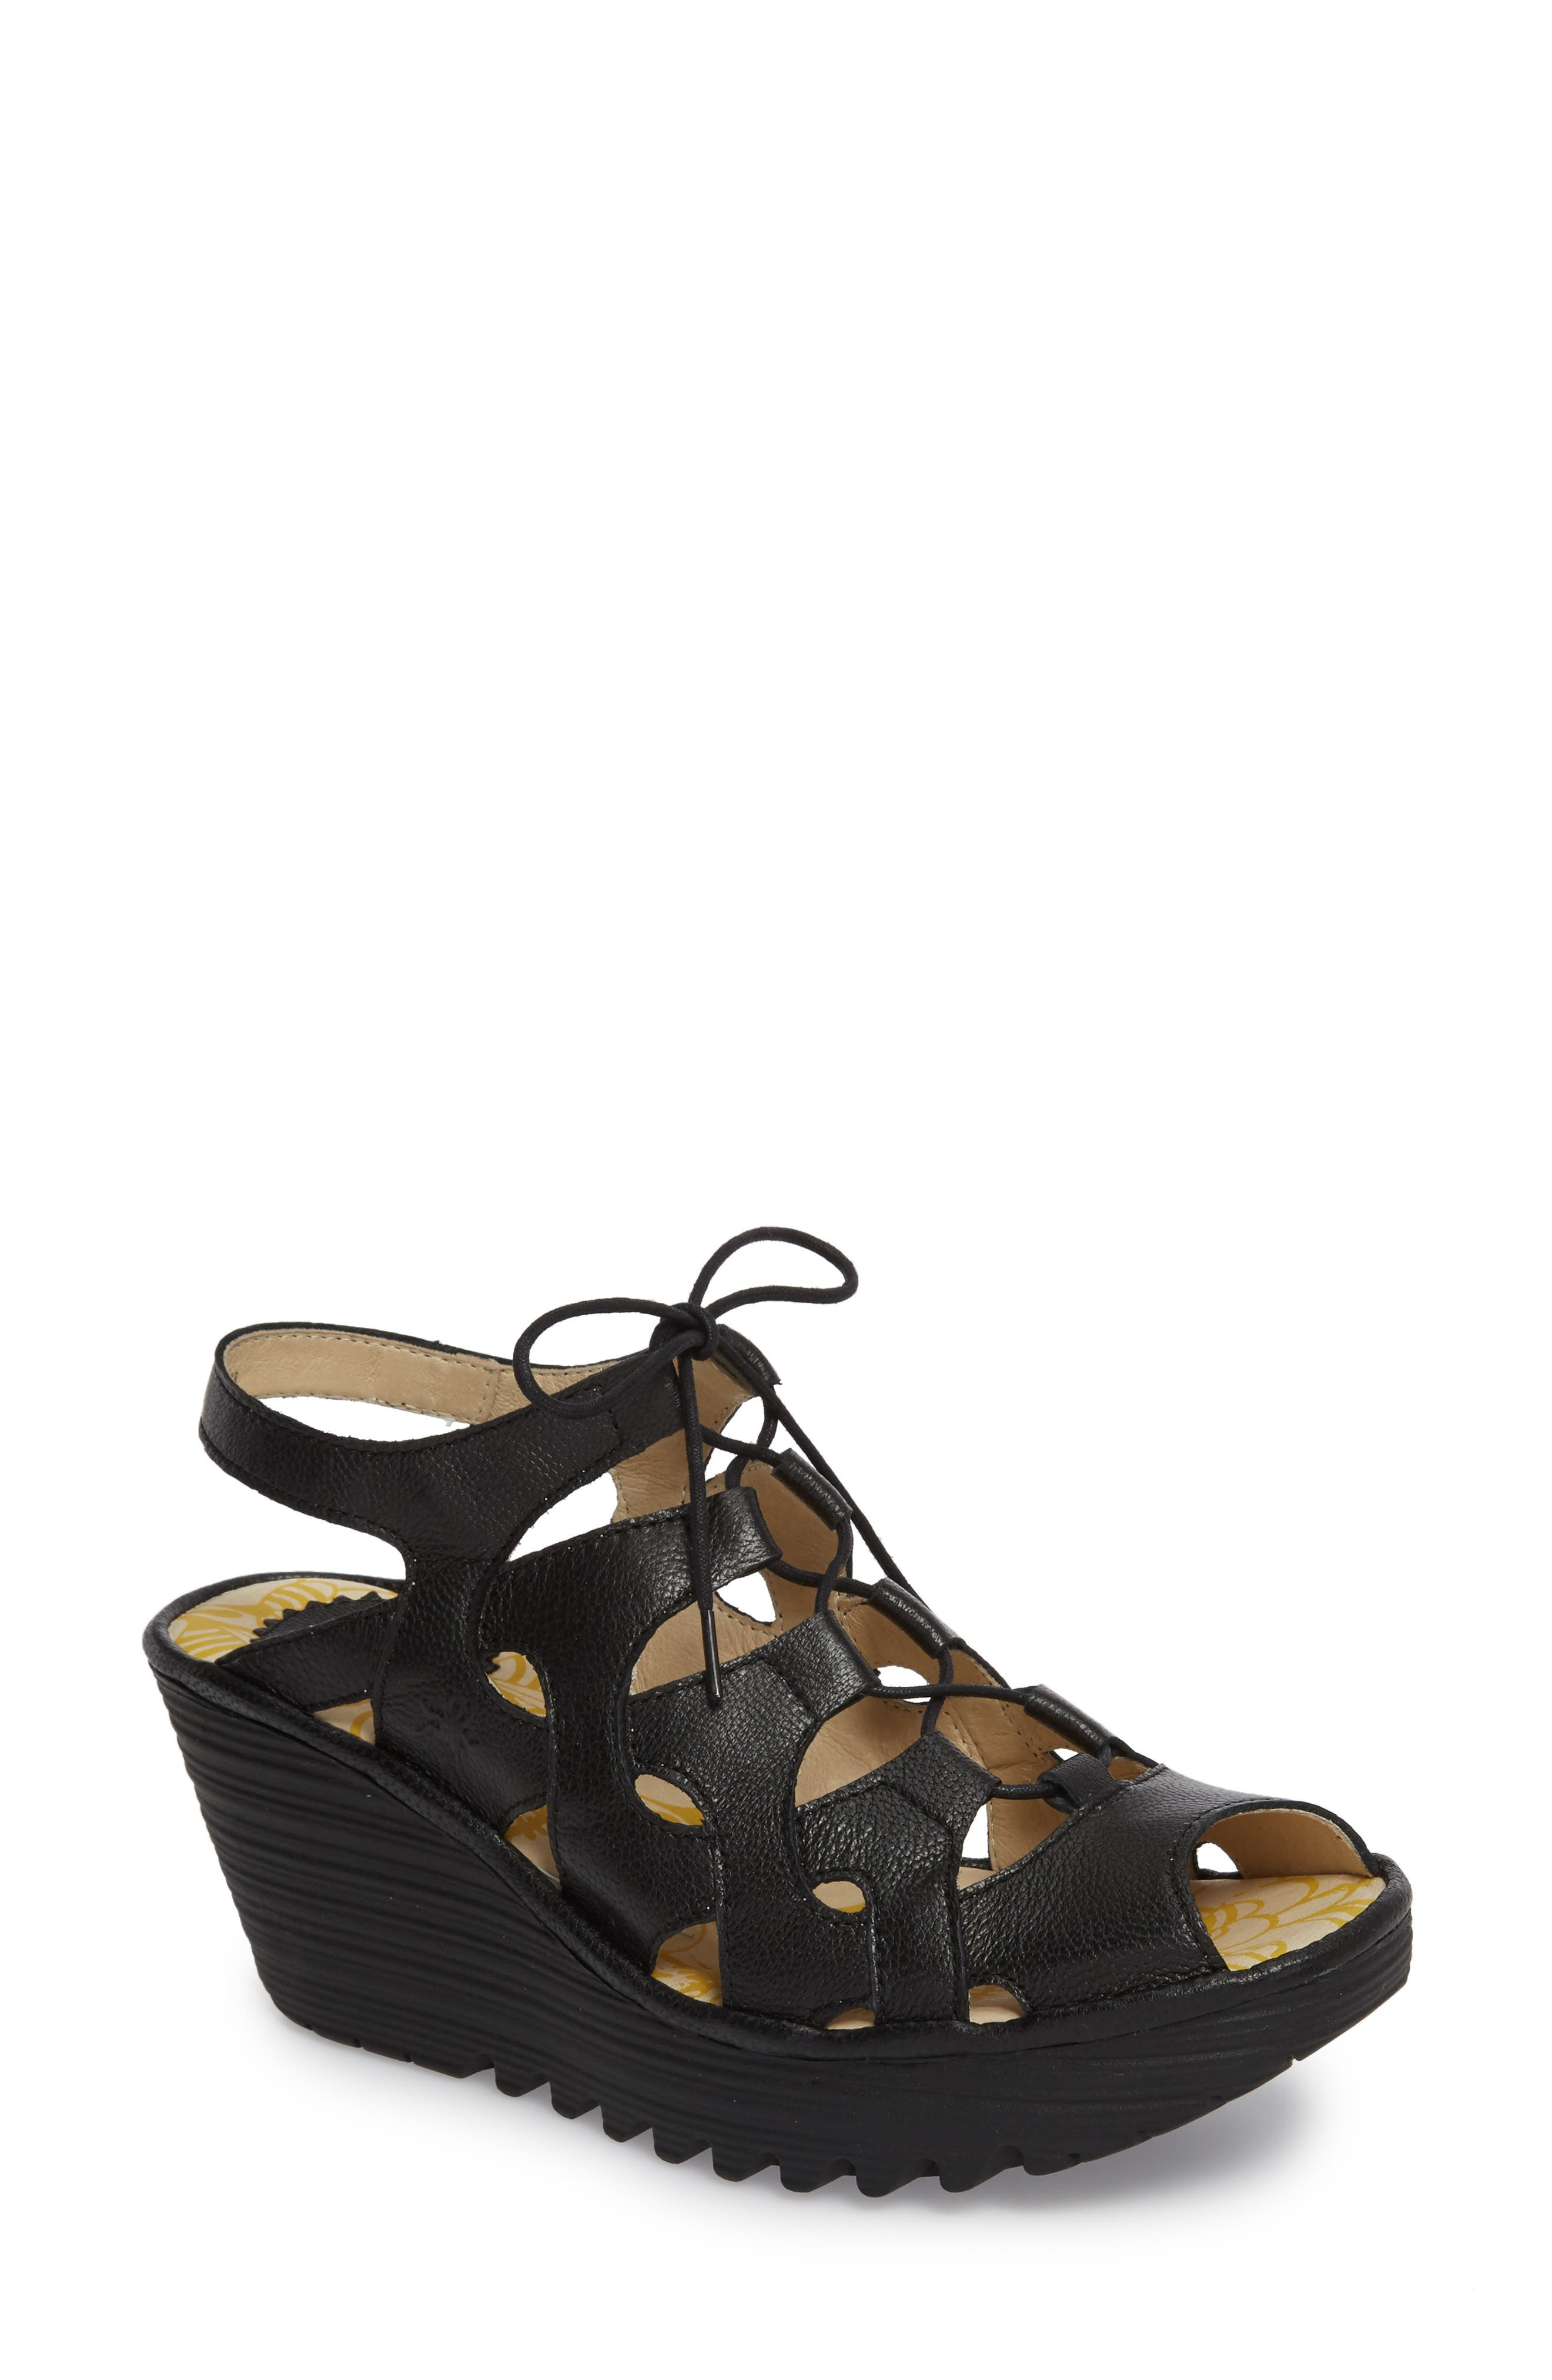 Yexa Sandal,                         Main,                         color, Black Mousse Leather